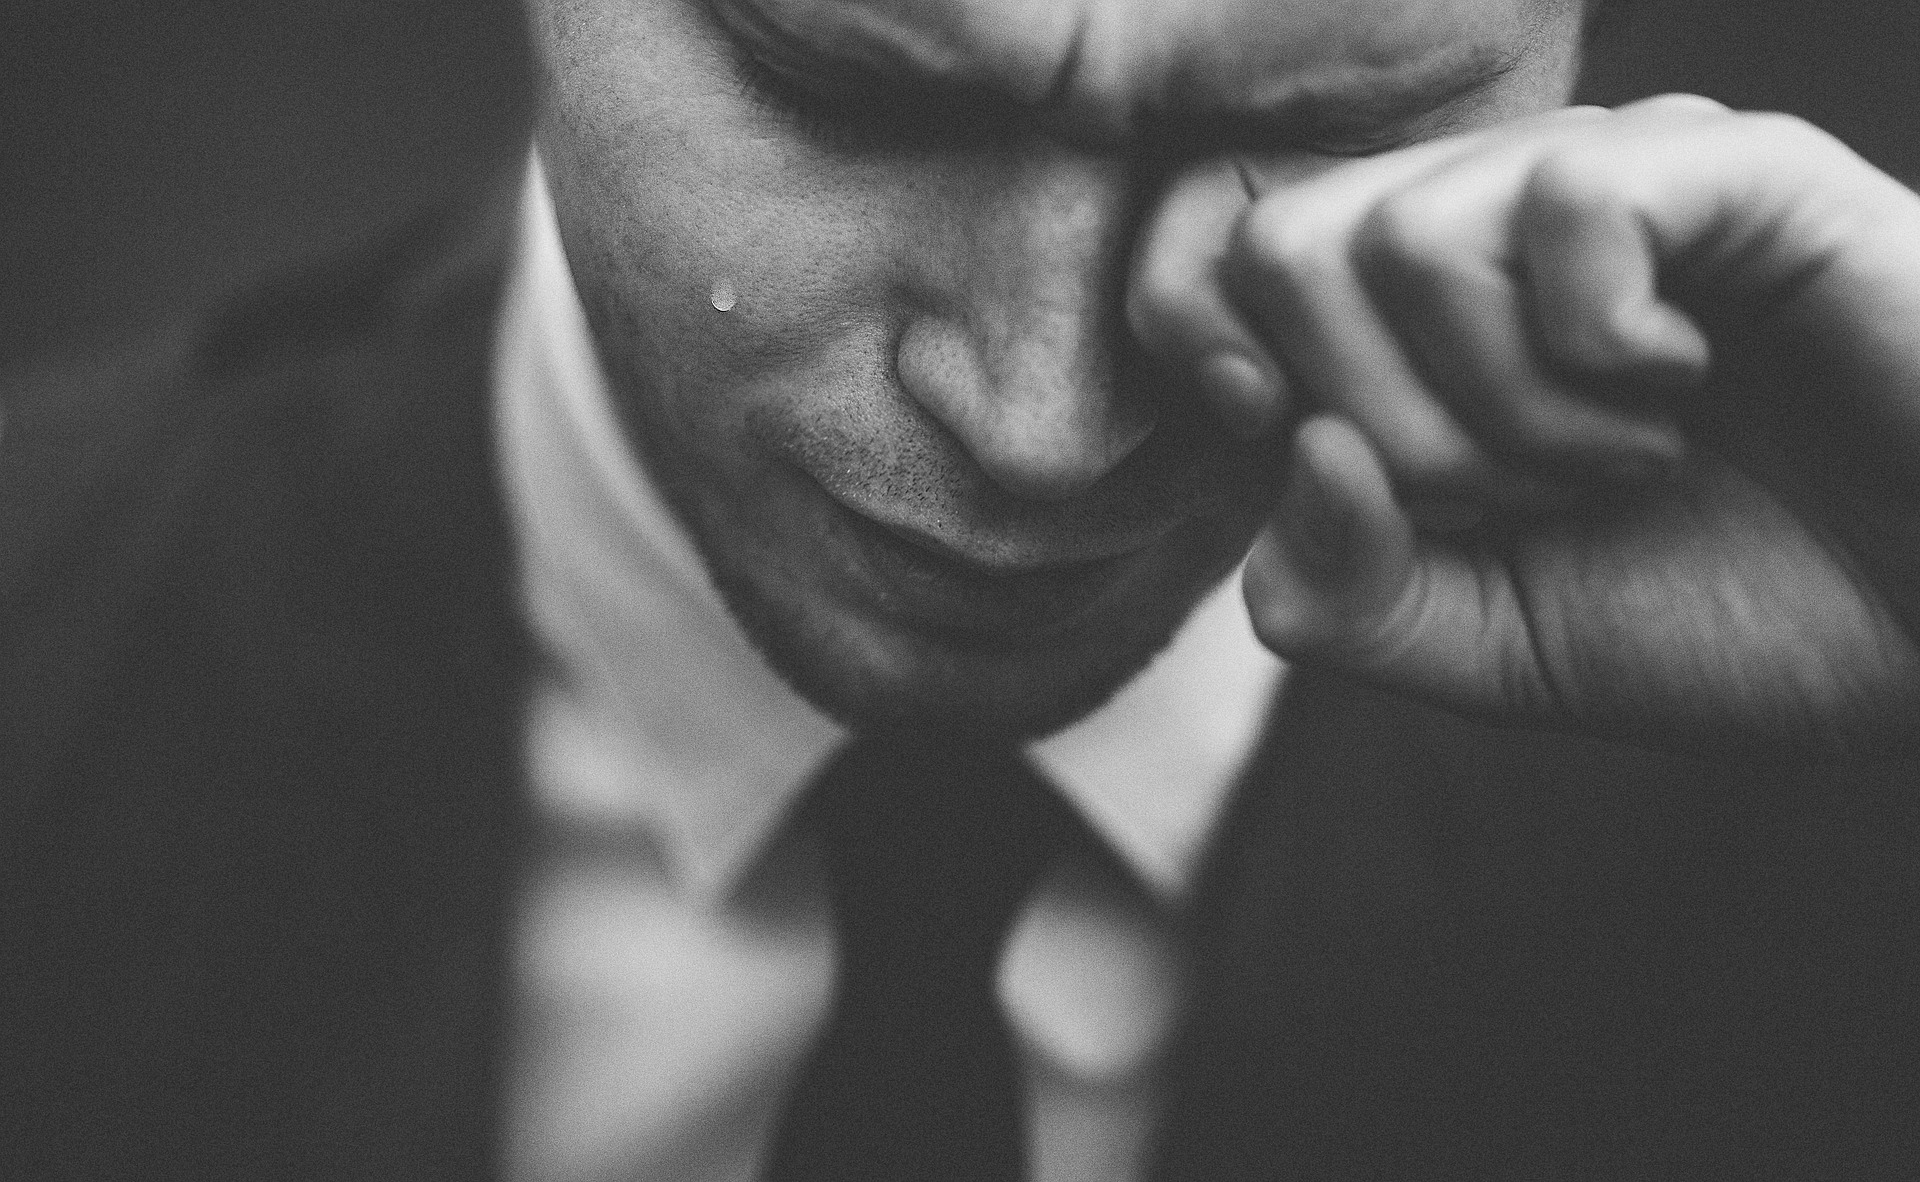 The chemicals released while crying help us self-regulate